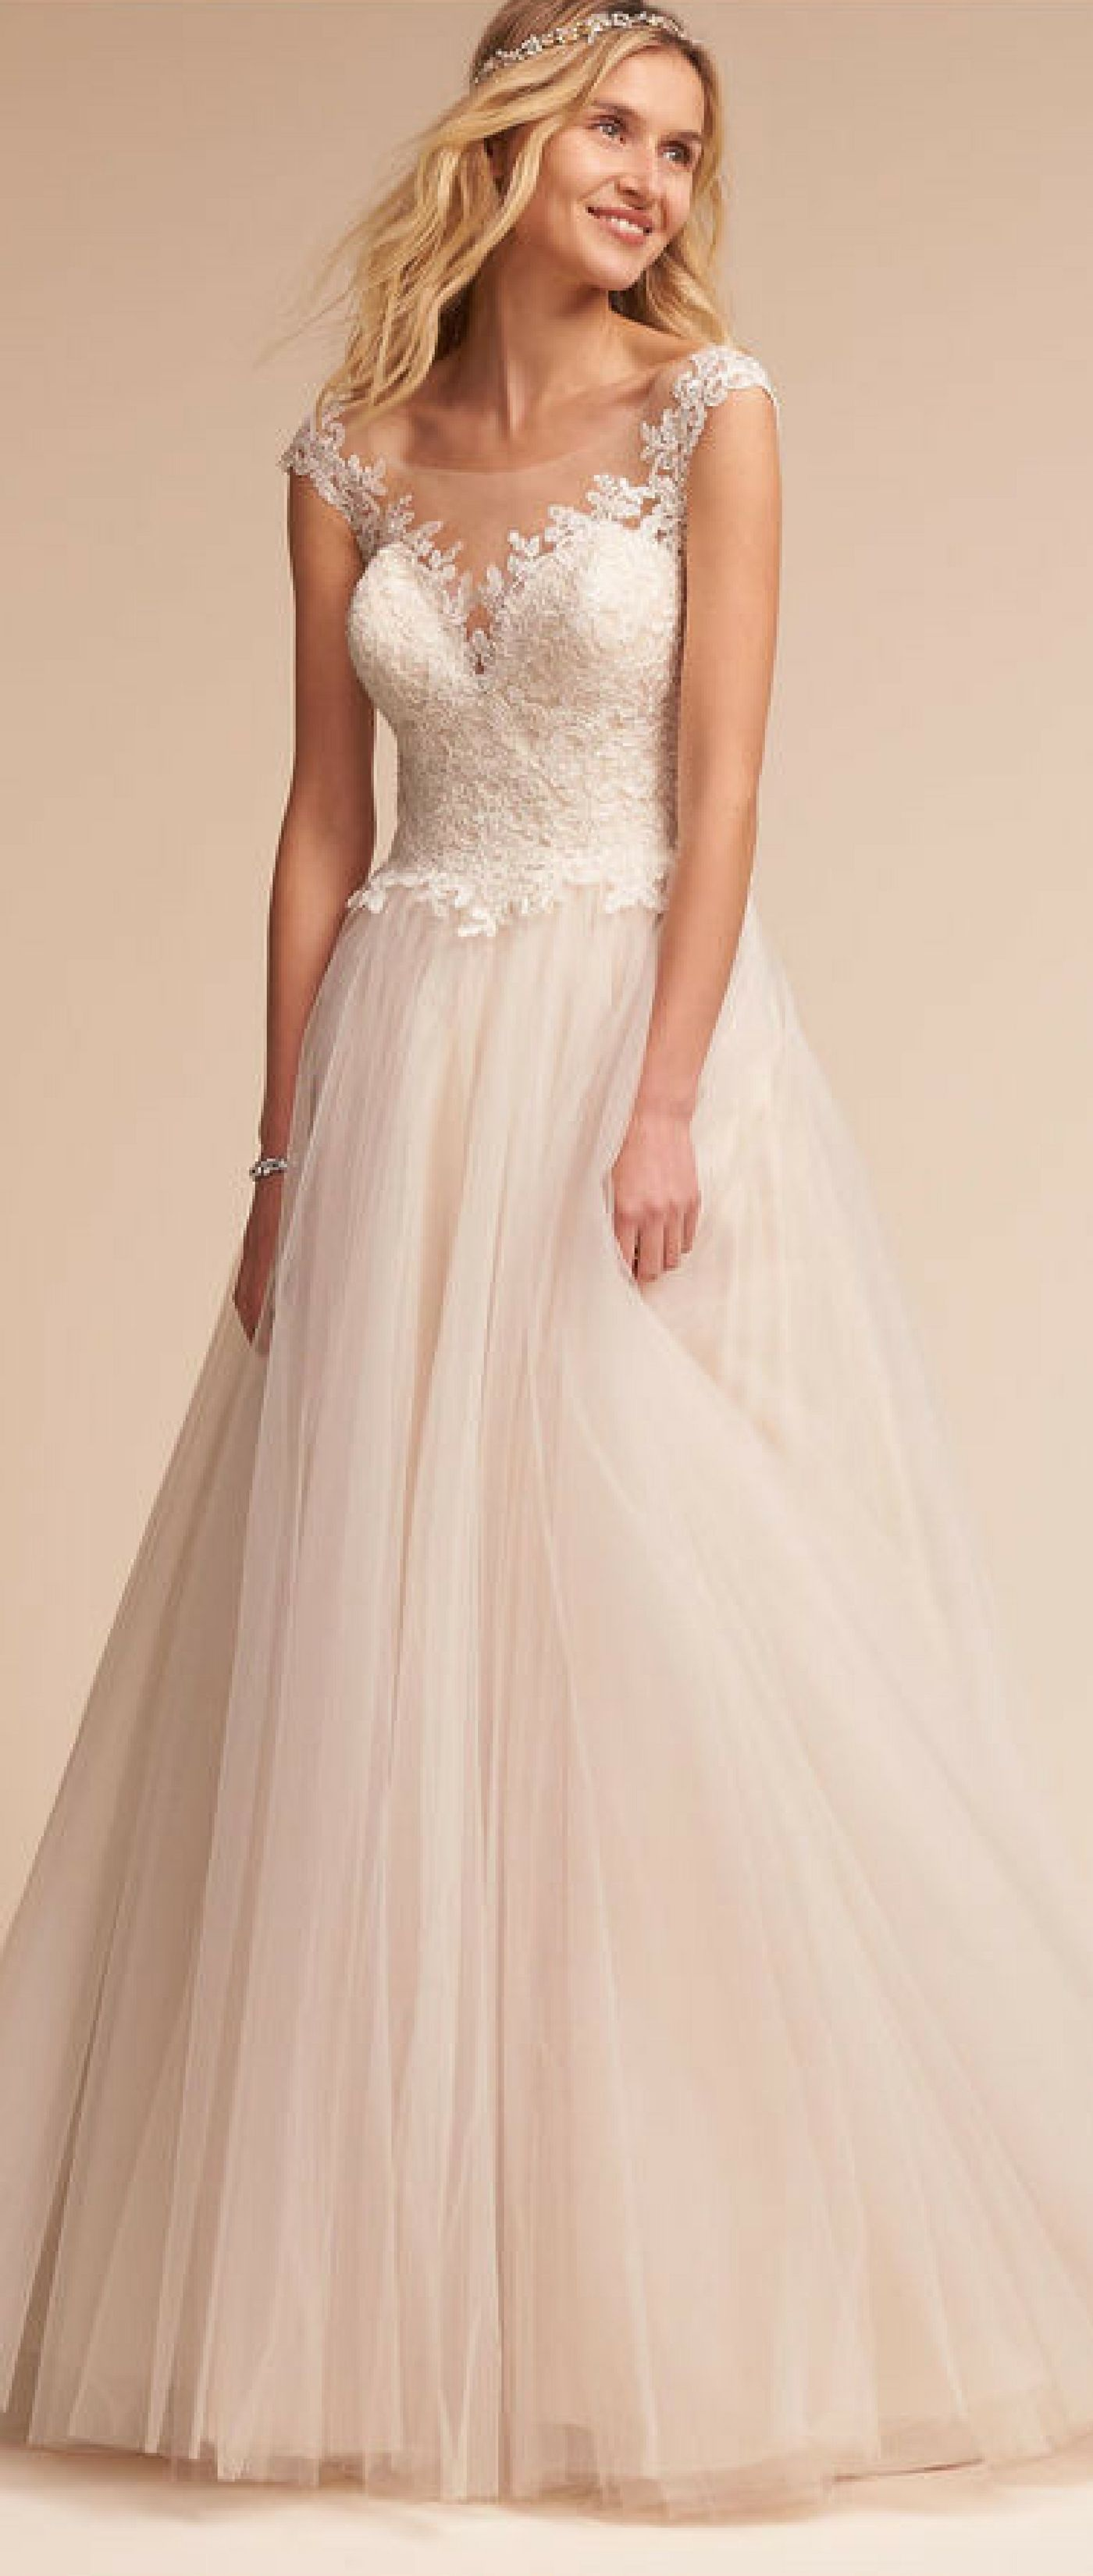 A ballgown silhouette ethereal layers of english net and lacy